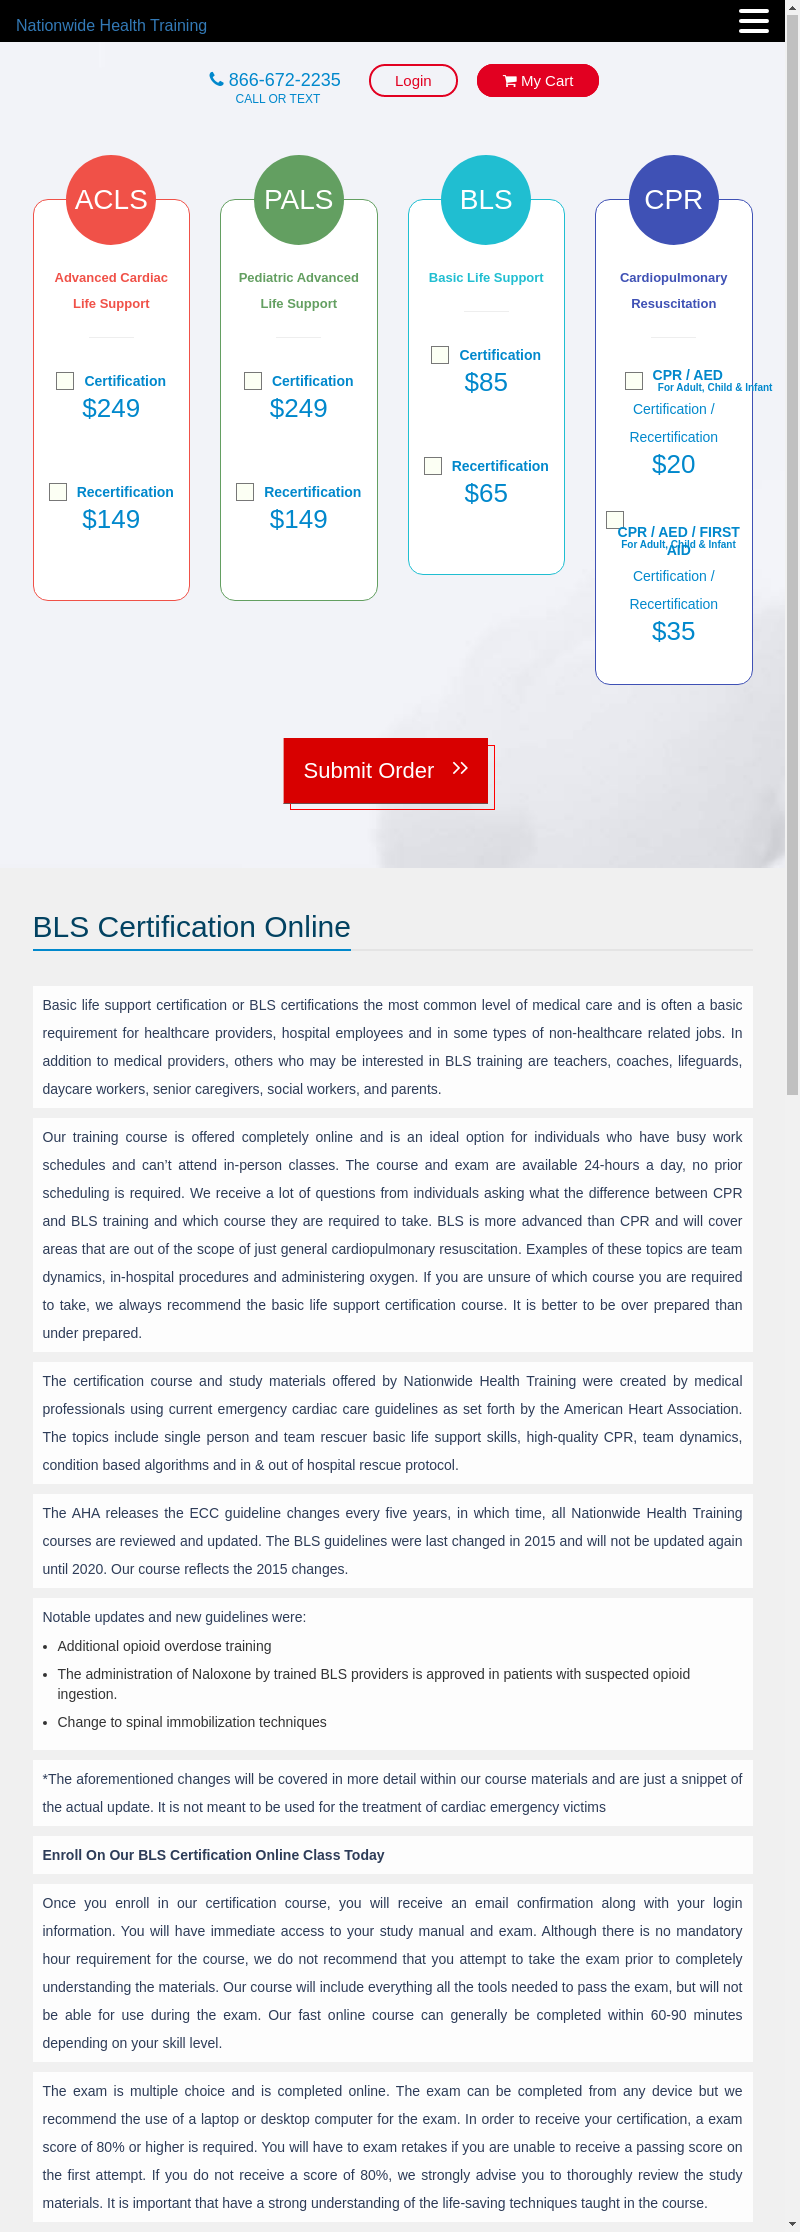 bls basic support certification training skills mix renew providers certificate care